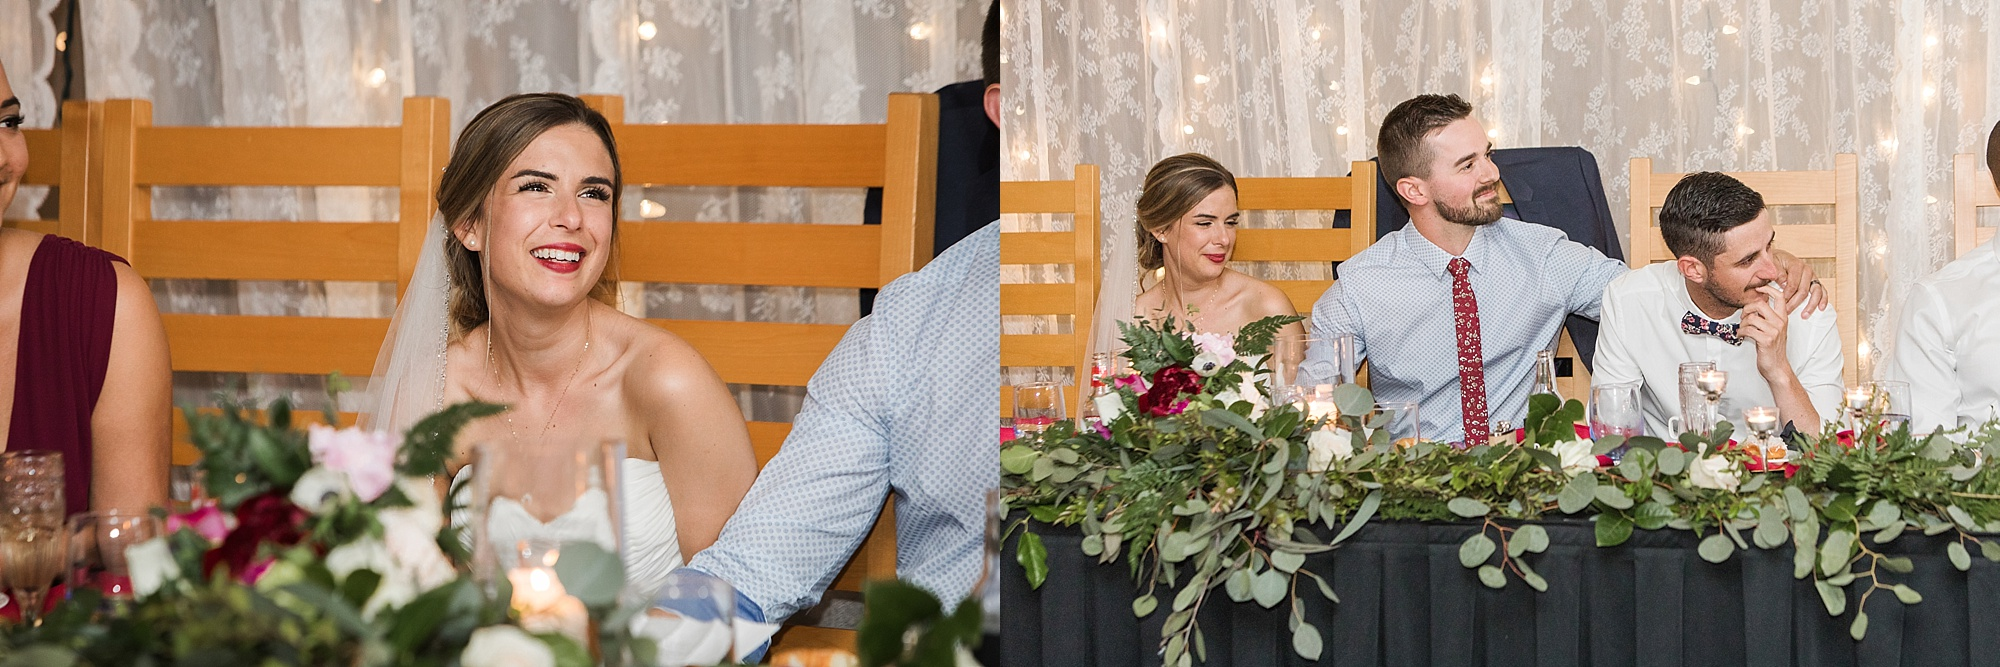 blackrockoceanfrontresort-wedding_0140.jpg